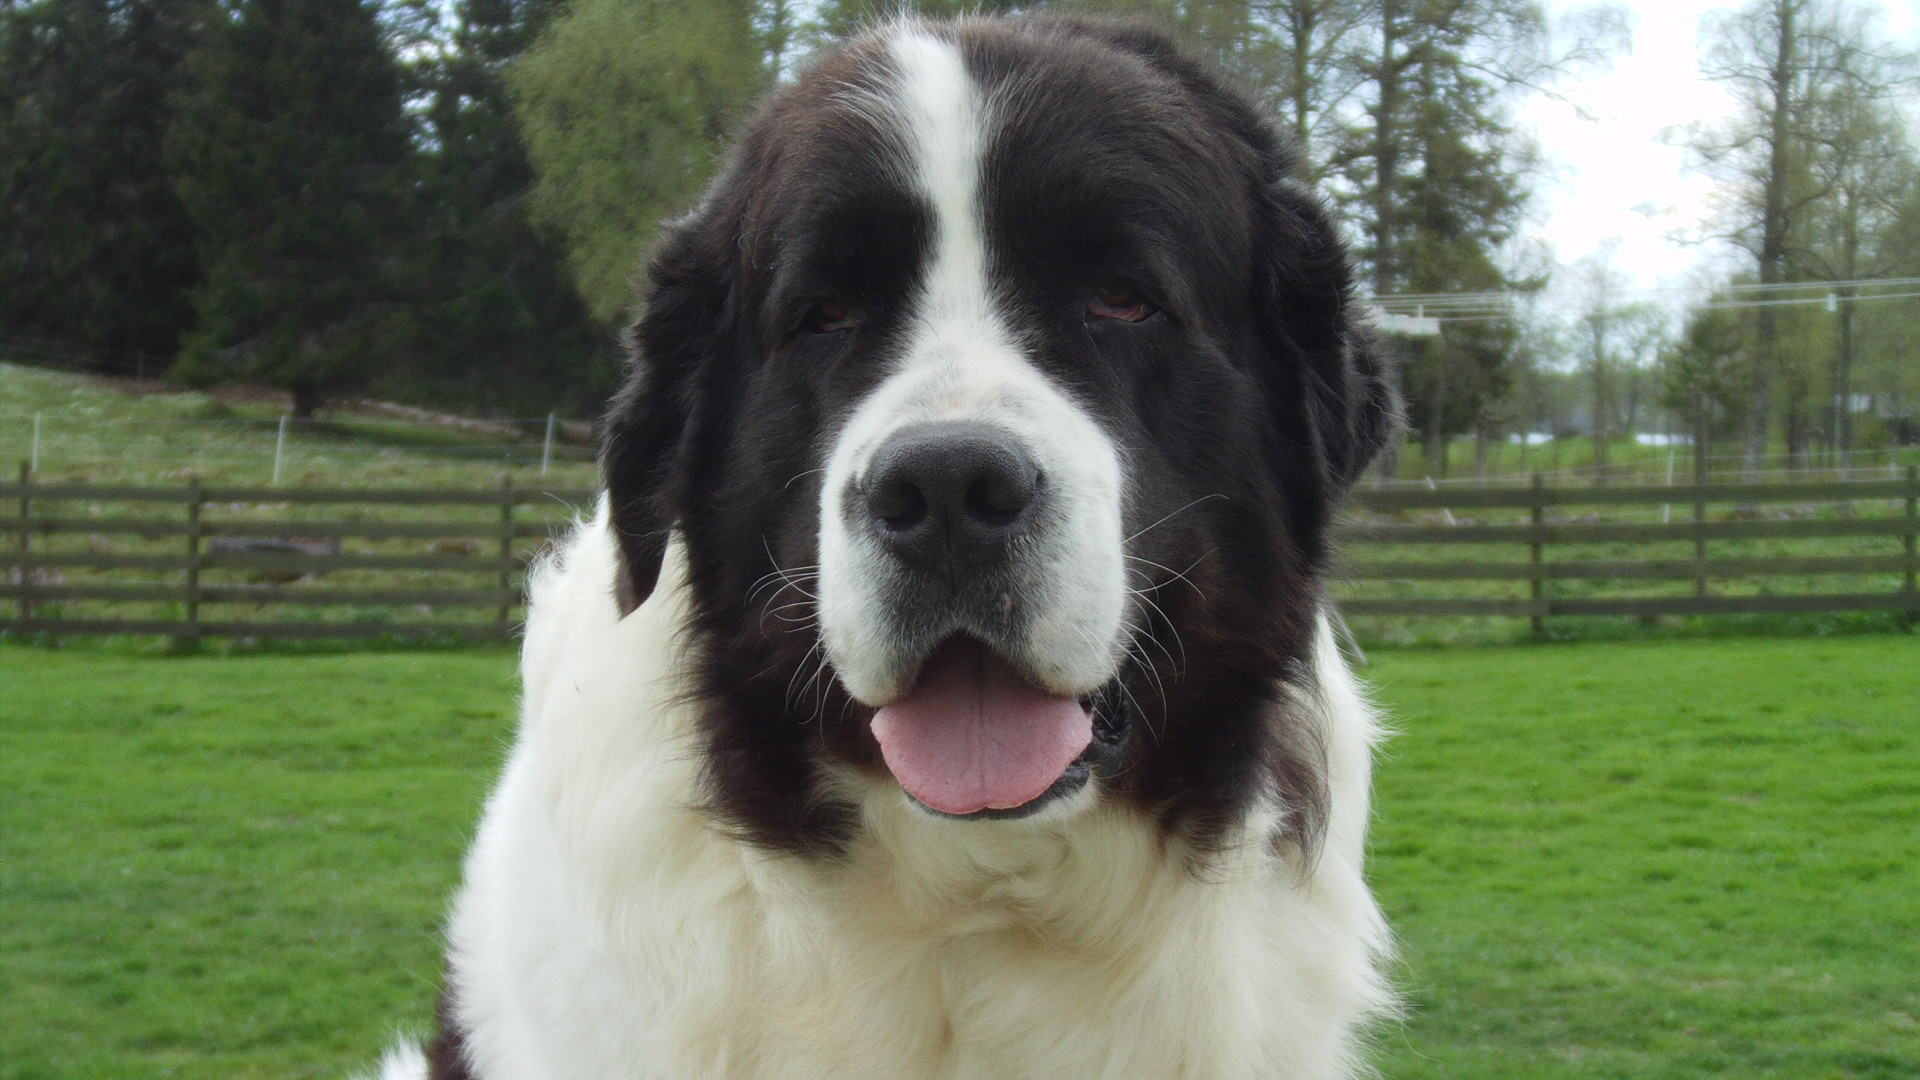 Landseer Dog: Landseer Landseer Dog Face Breed